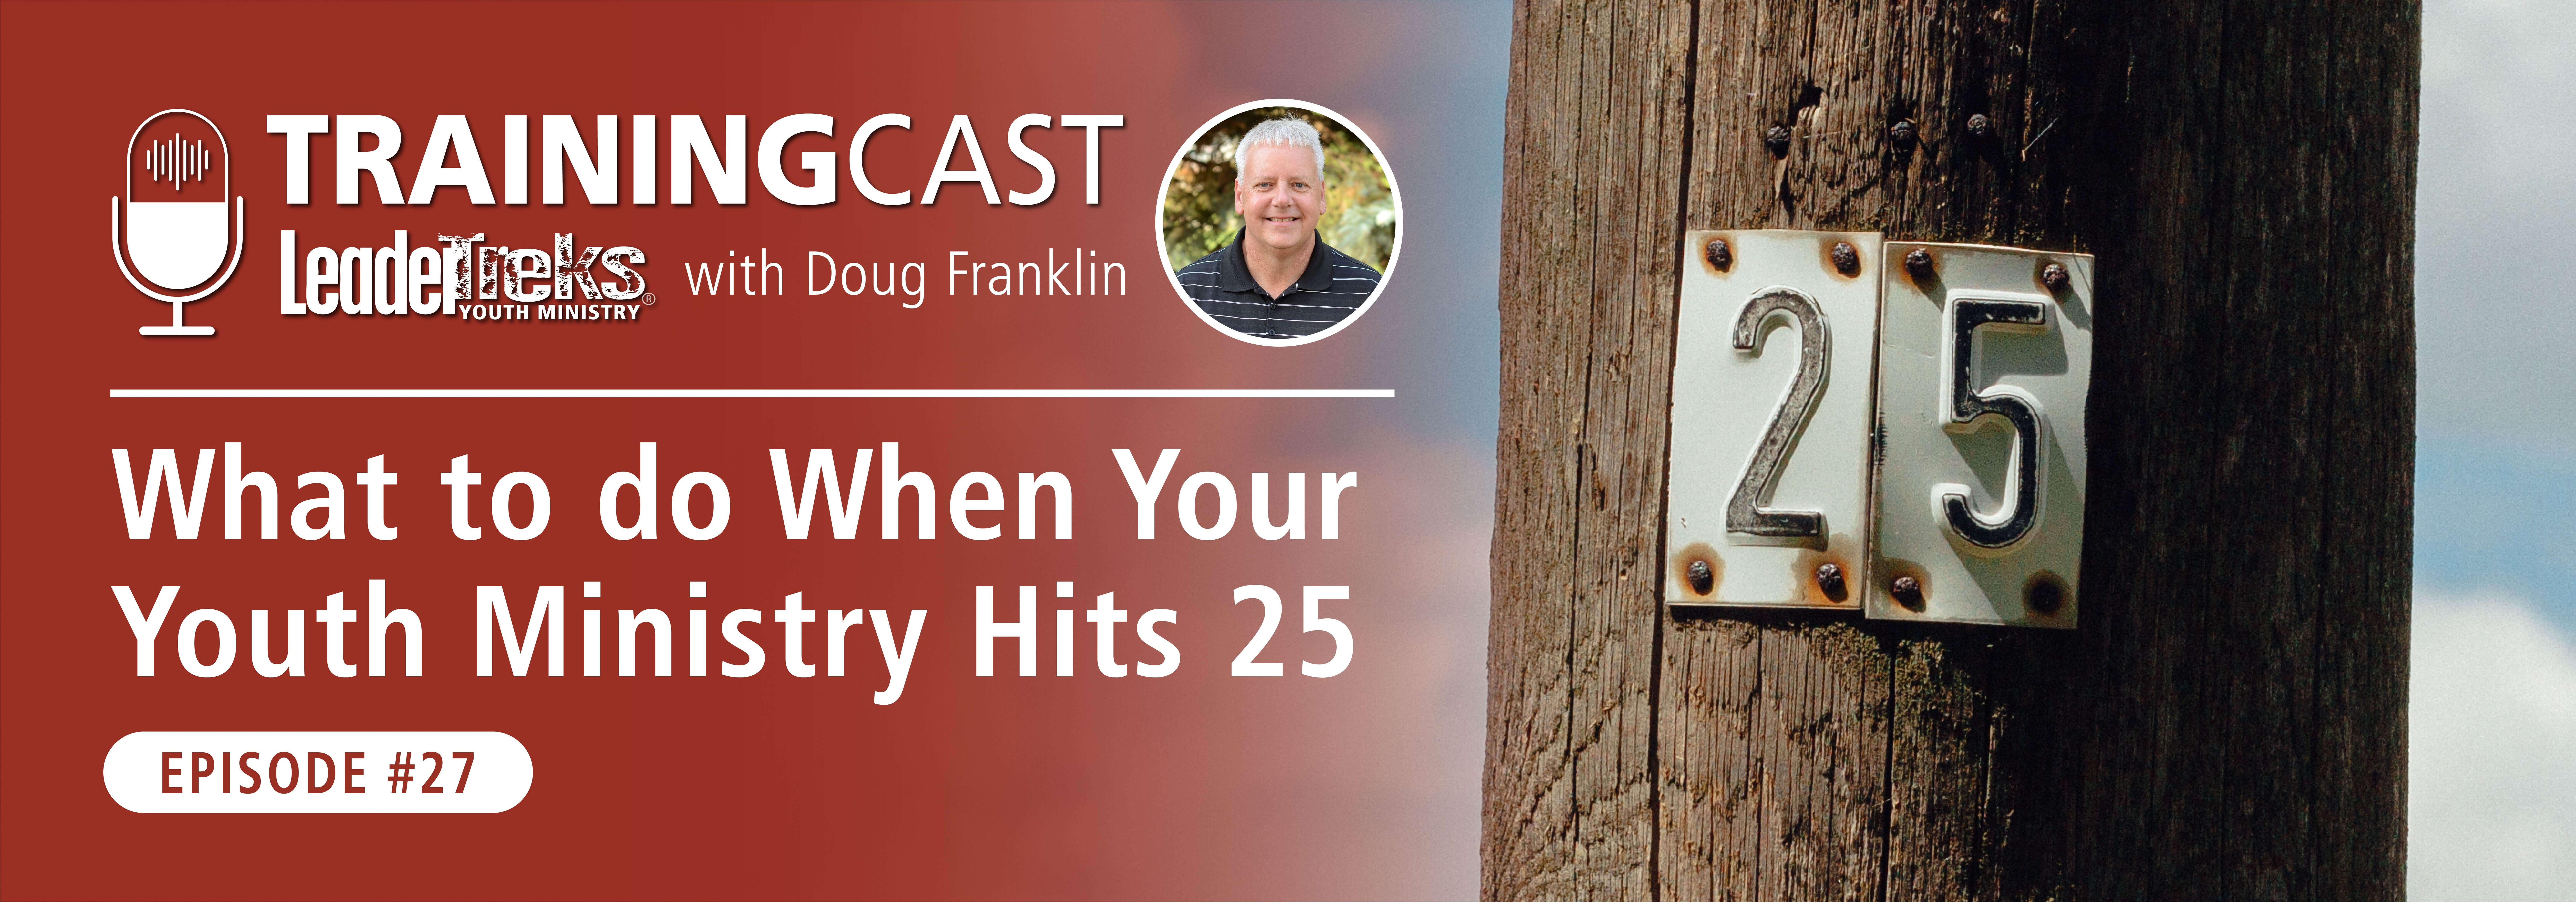 what to do when your youth ministry hits 25 podcast